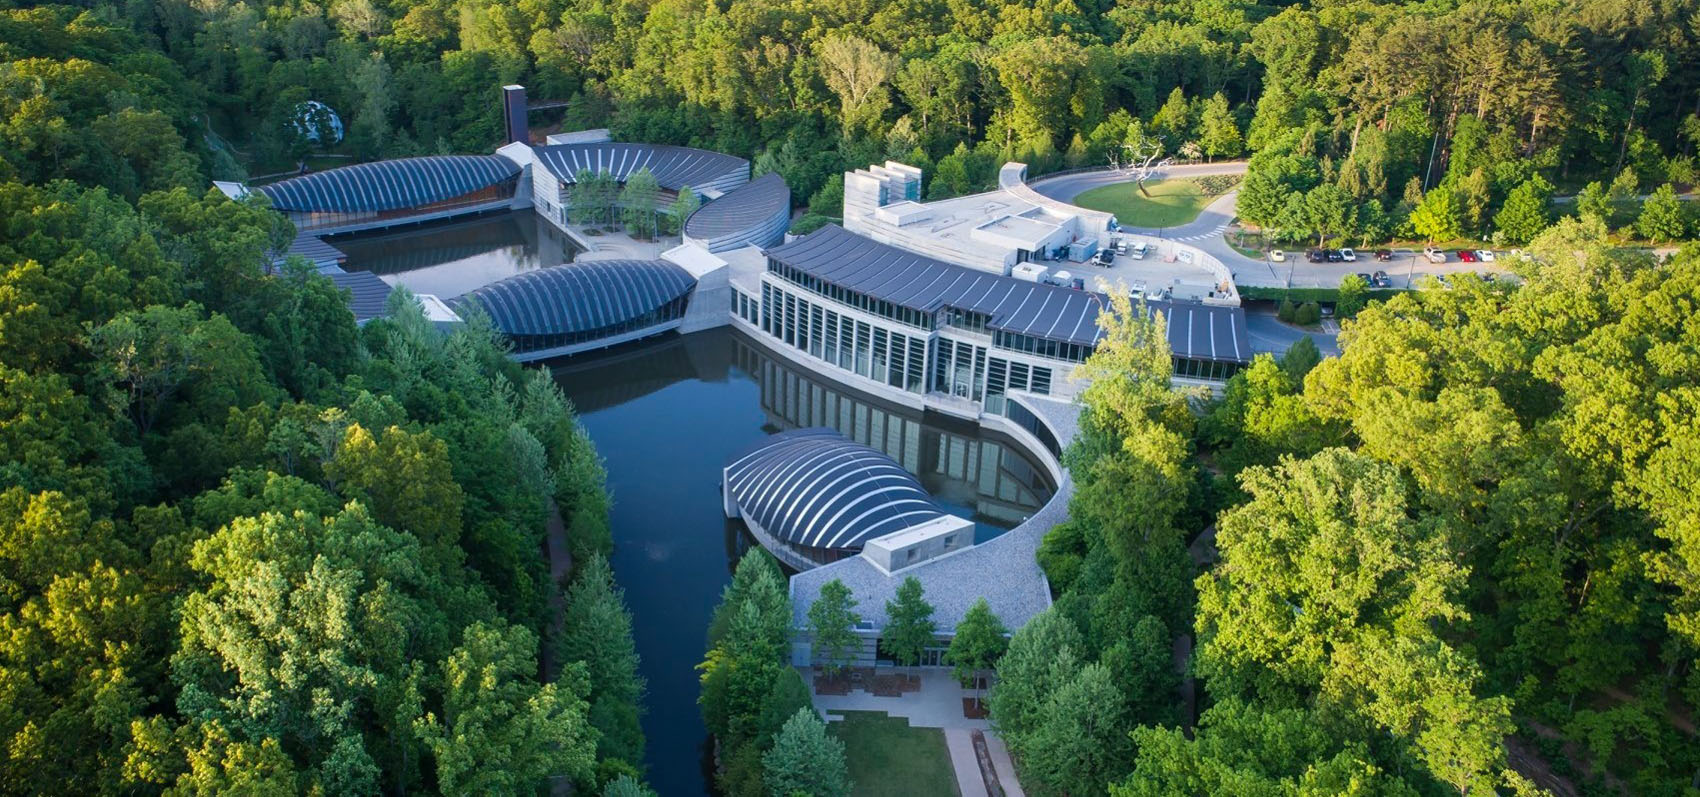 View of Crystal Bridges and surrounding trees from above